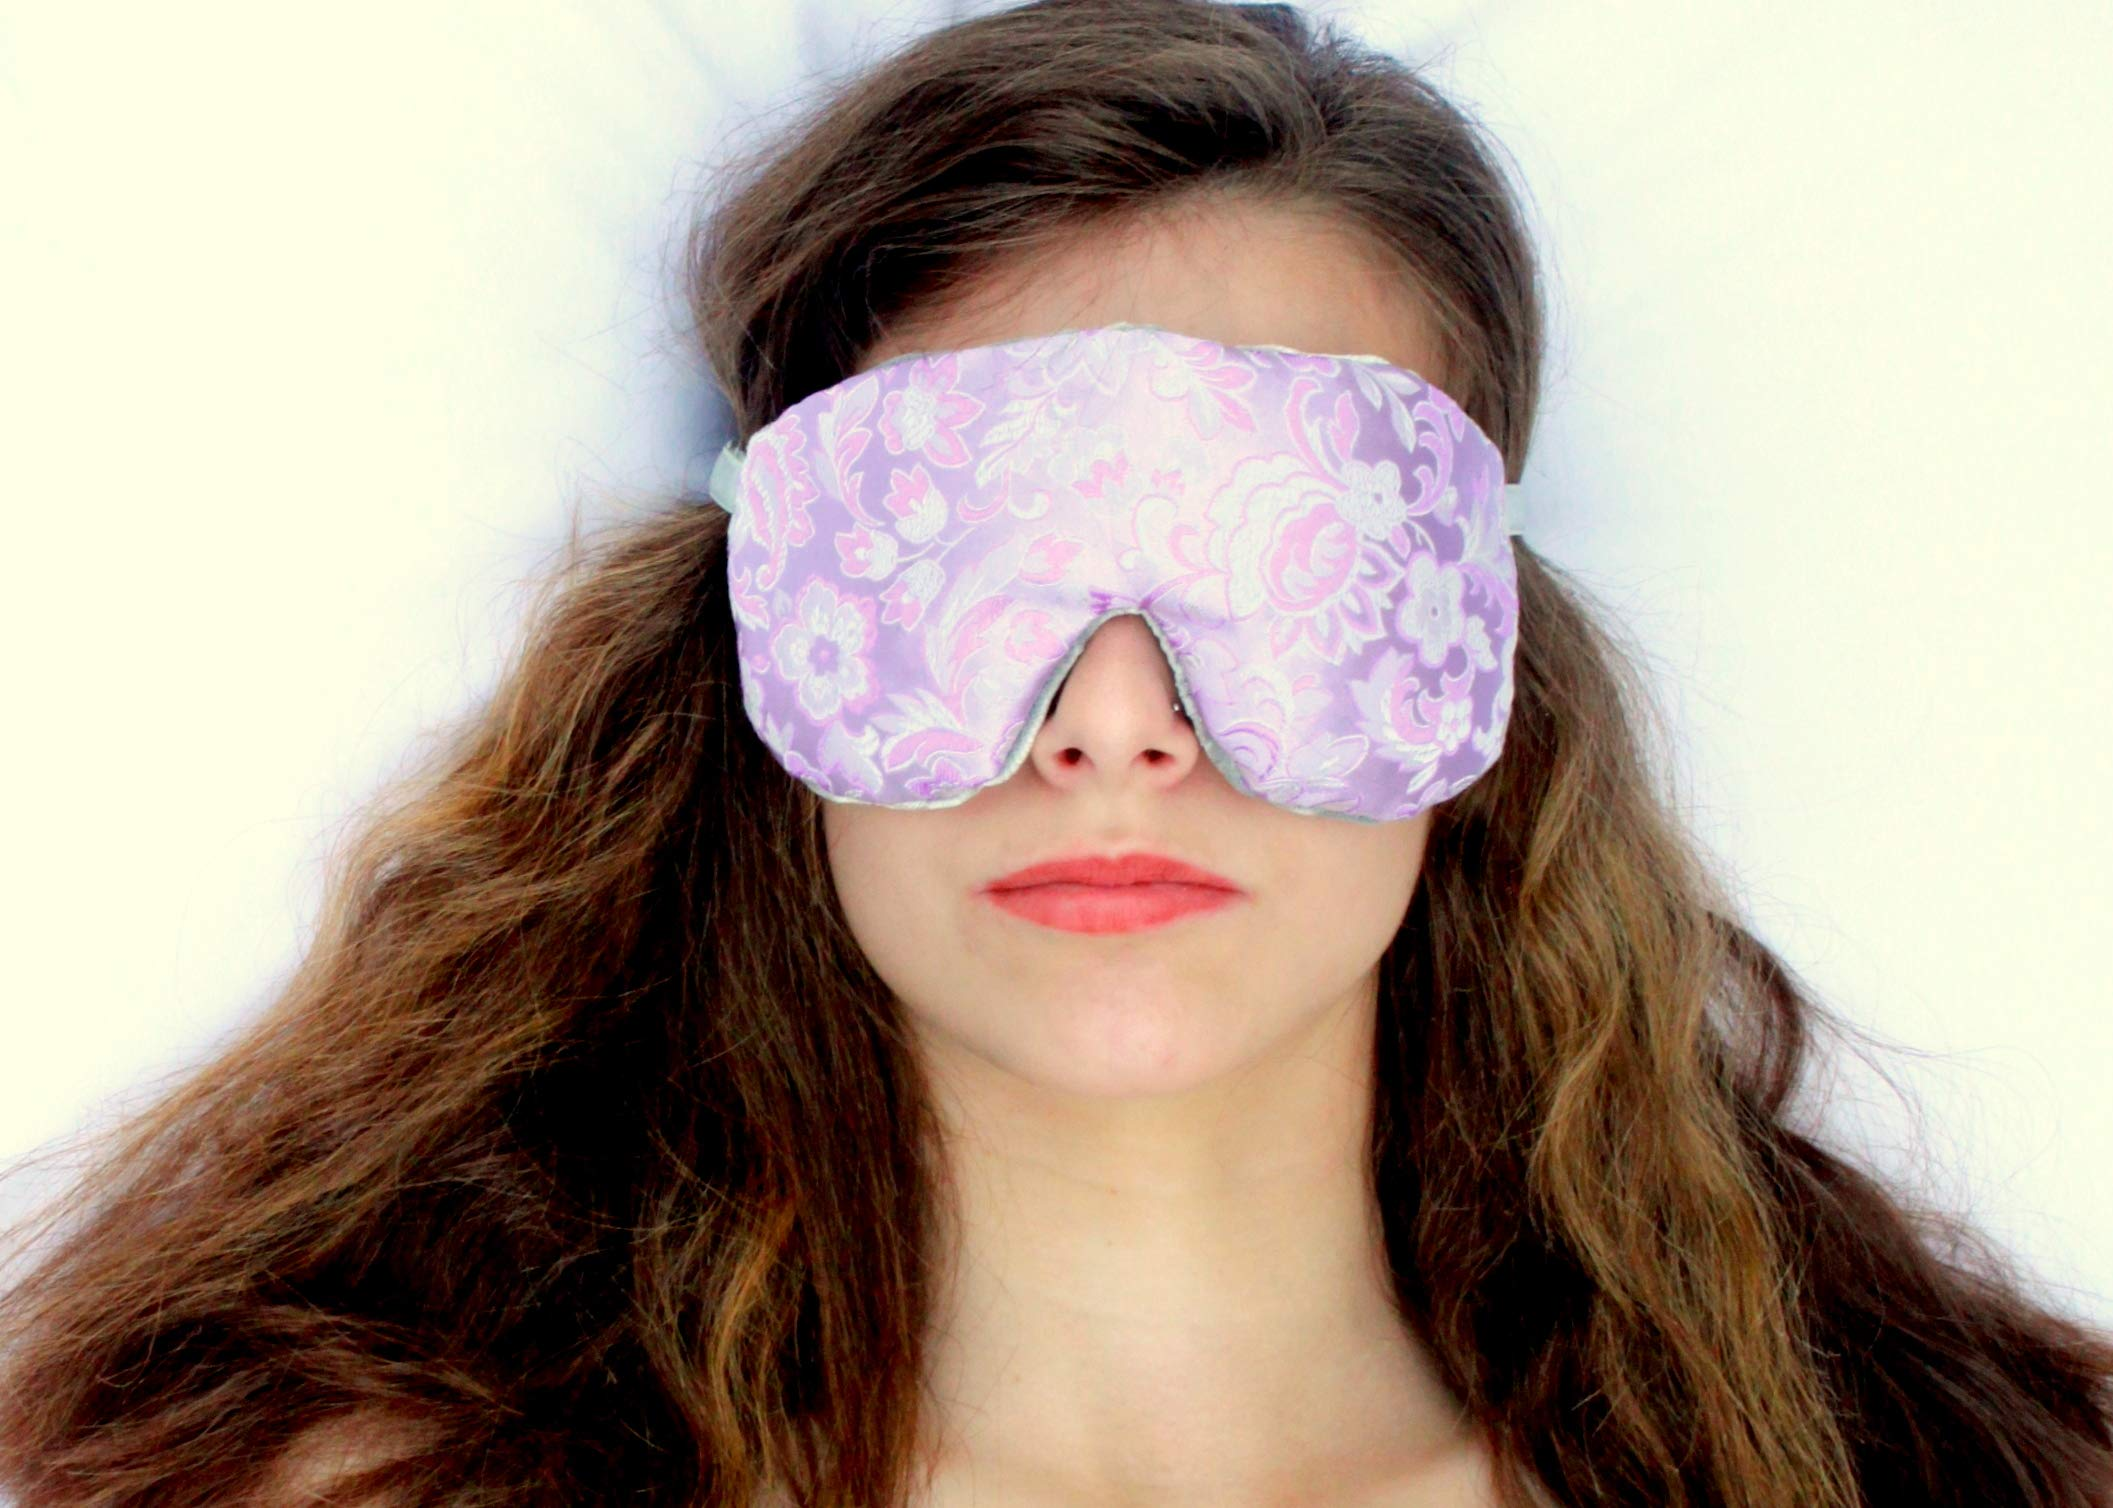 Weighted Sleep Eye Mask Pillow Handmade by Candi Andi - Adjustable Strap - Travel - Flax Seed Filled - Lavender Scented or Unscented - Satin Brocade and Crushed Velvet - Lovely Lilac - TEMLF-LL